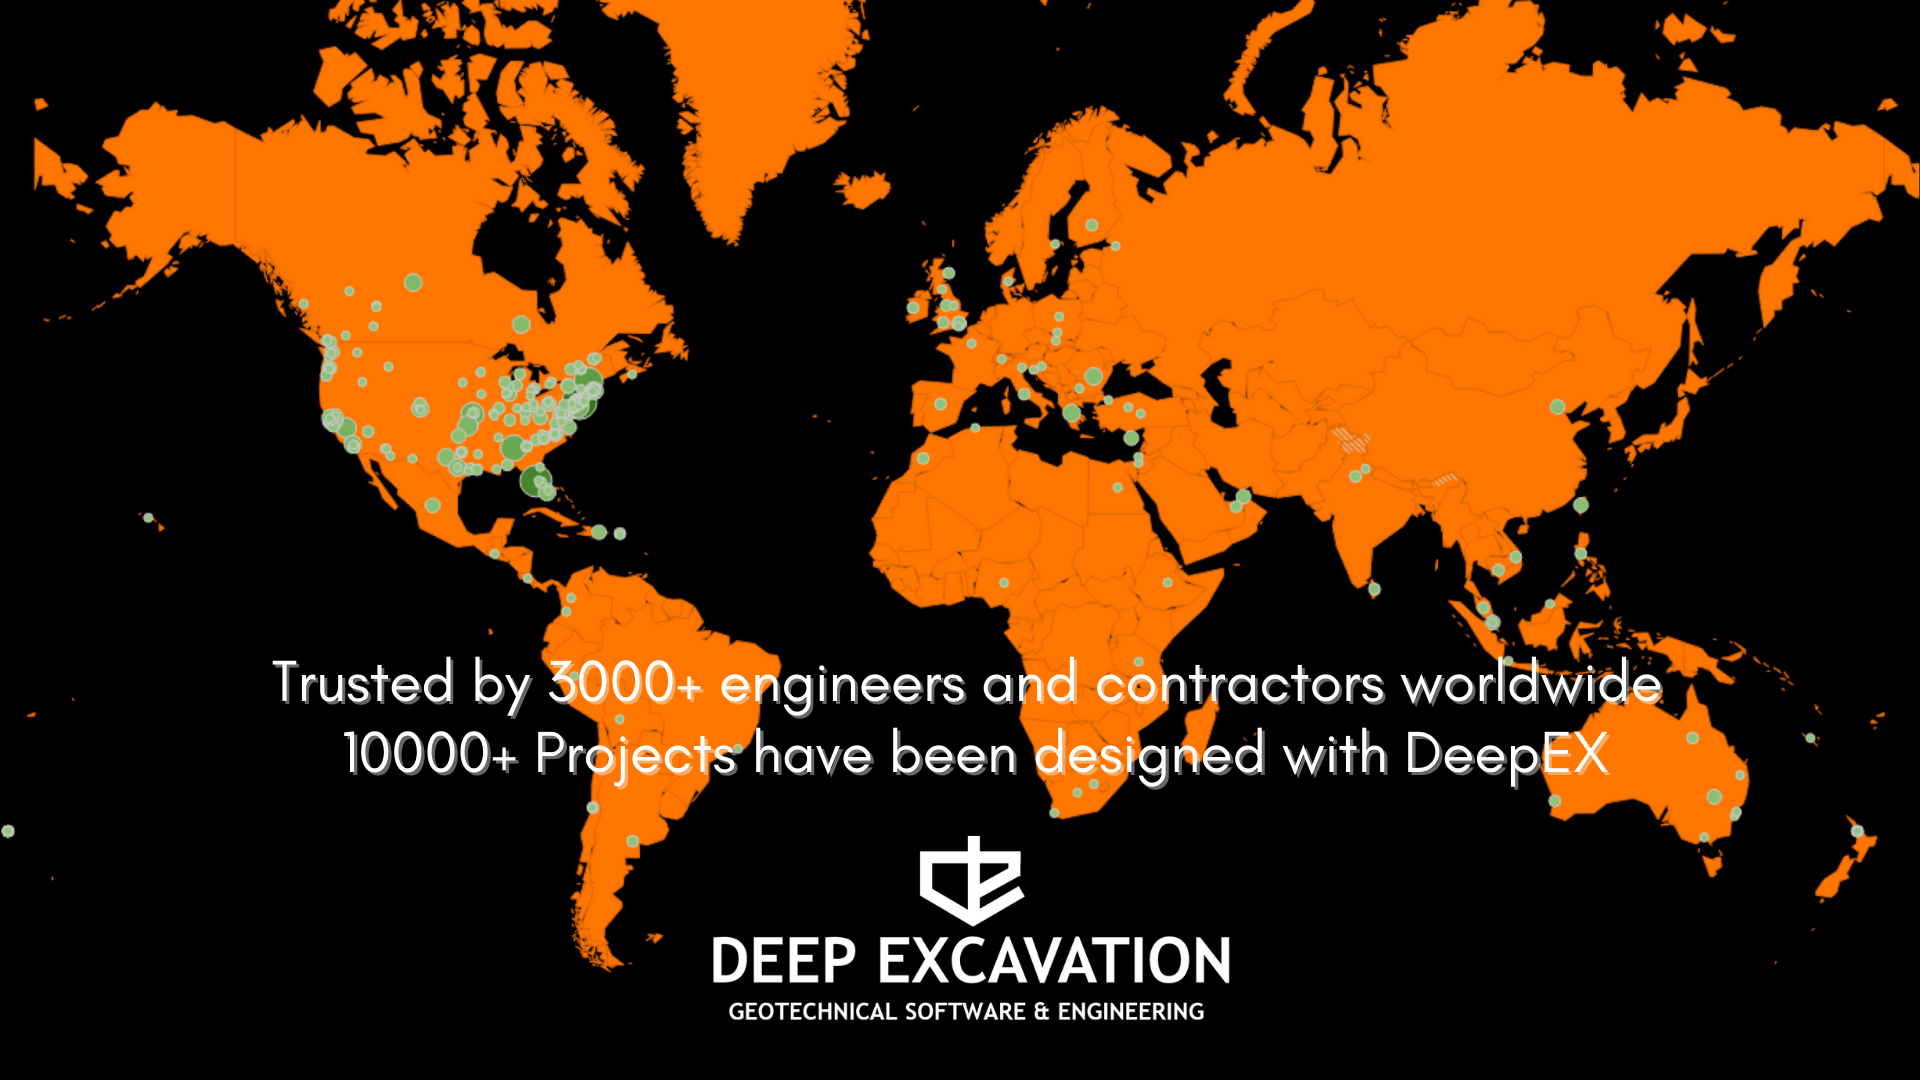 Deep-Excavation-Software-Worldwide.png